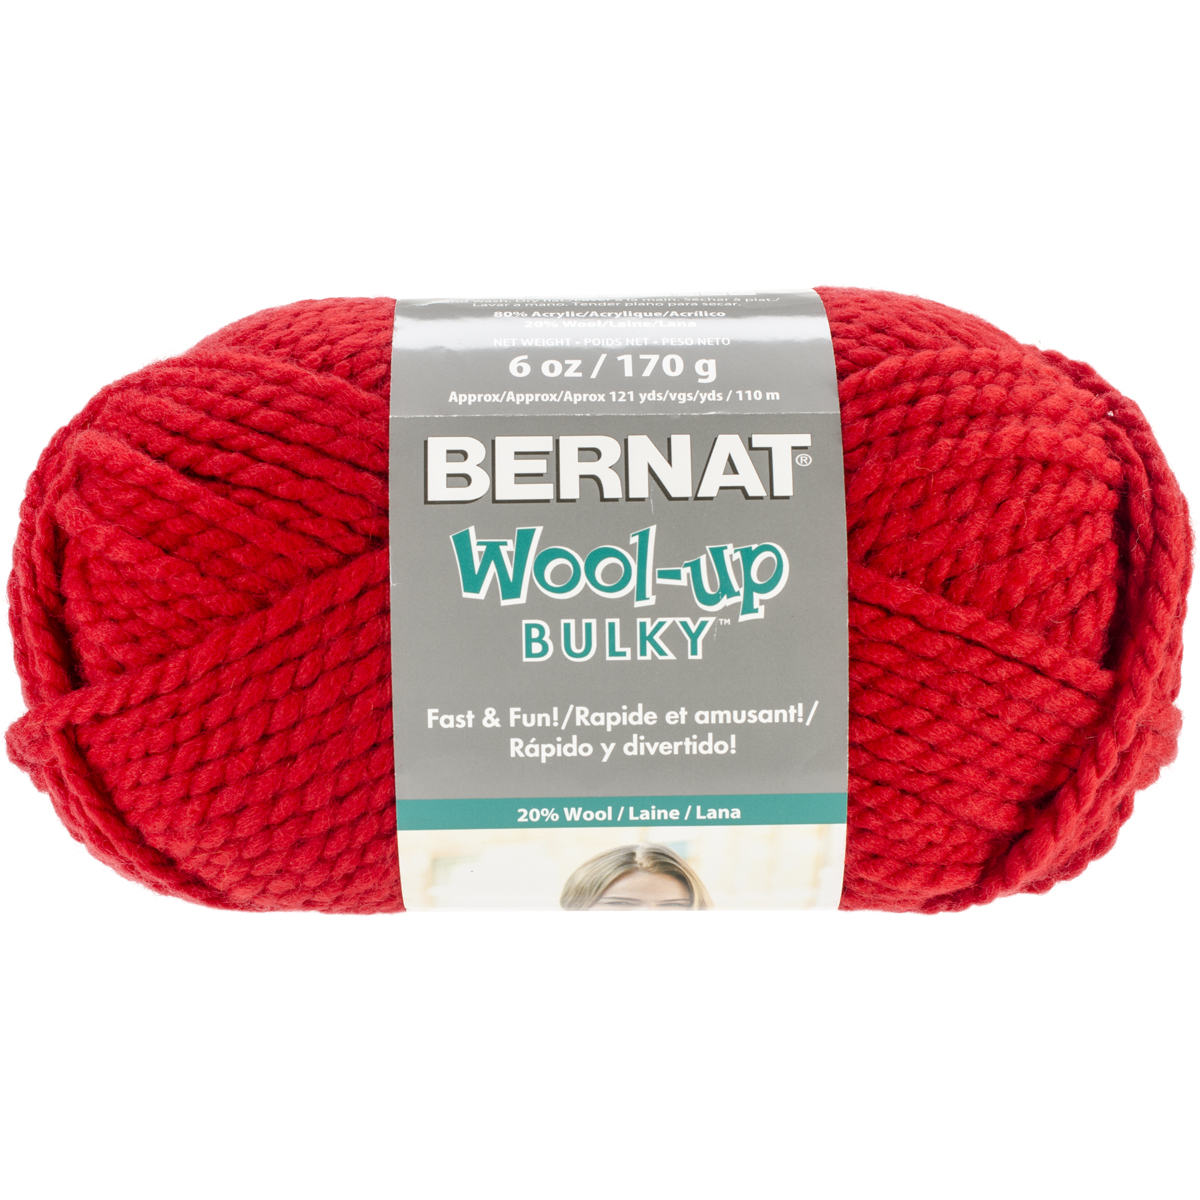 Spinrite Wool-Up Bulky Yarn, Red Multi-Colored